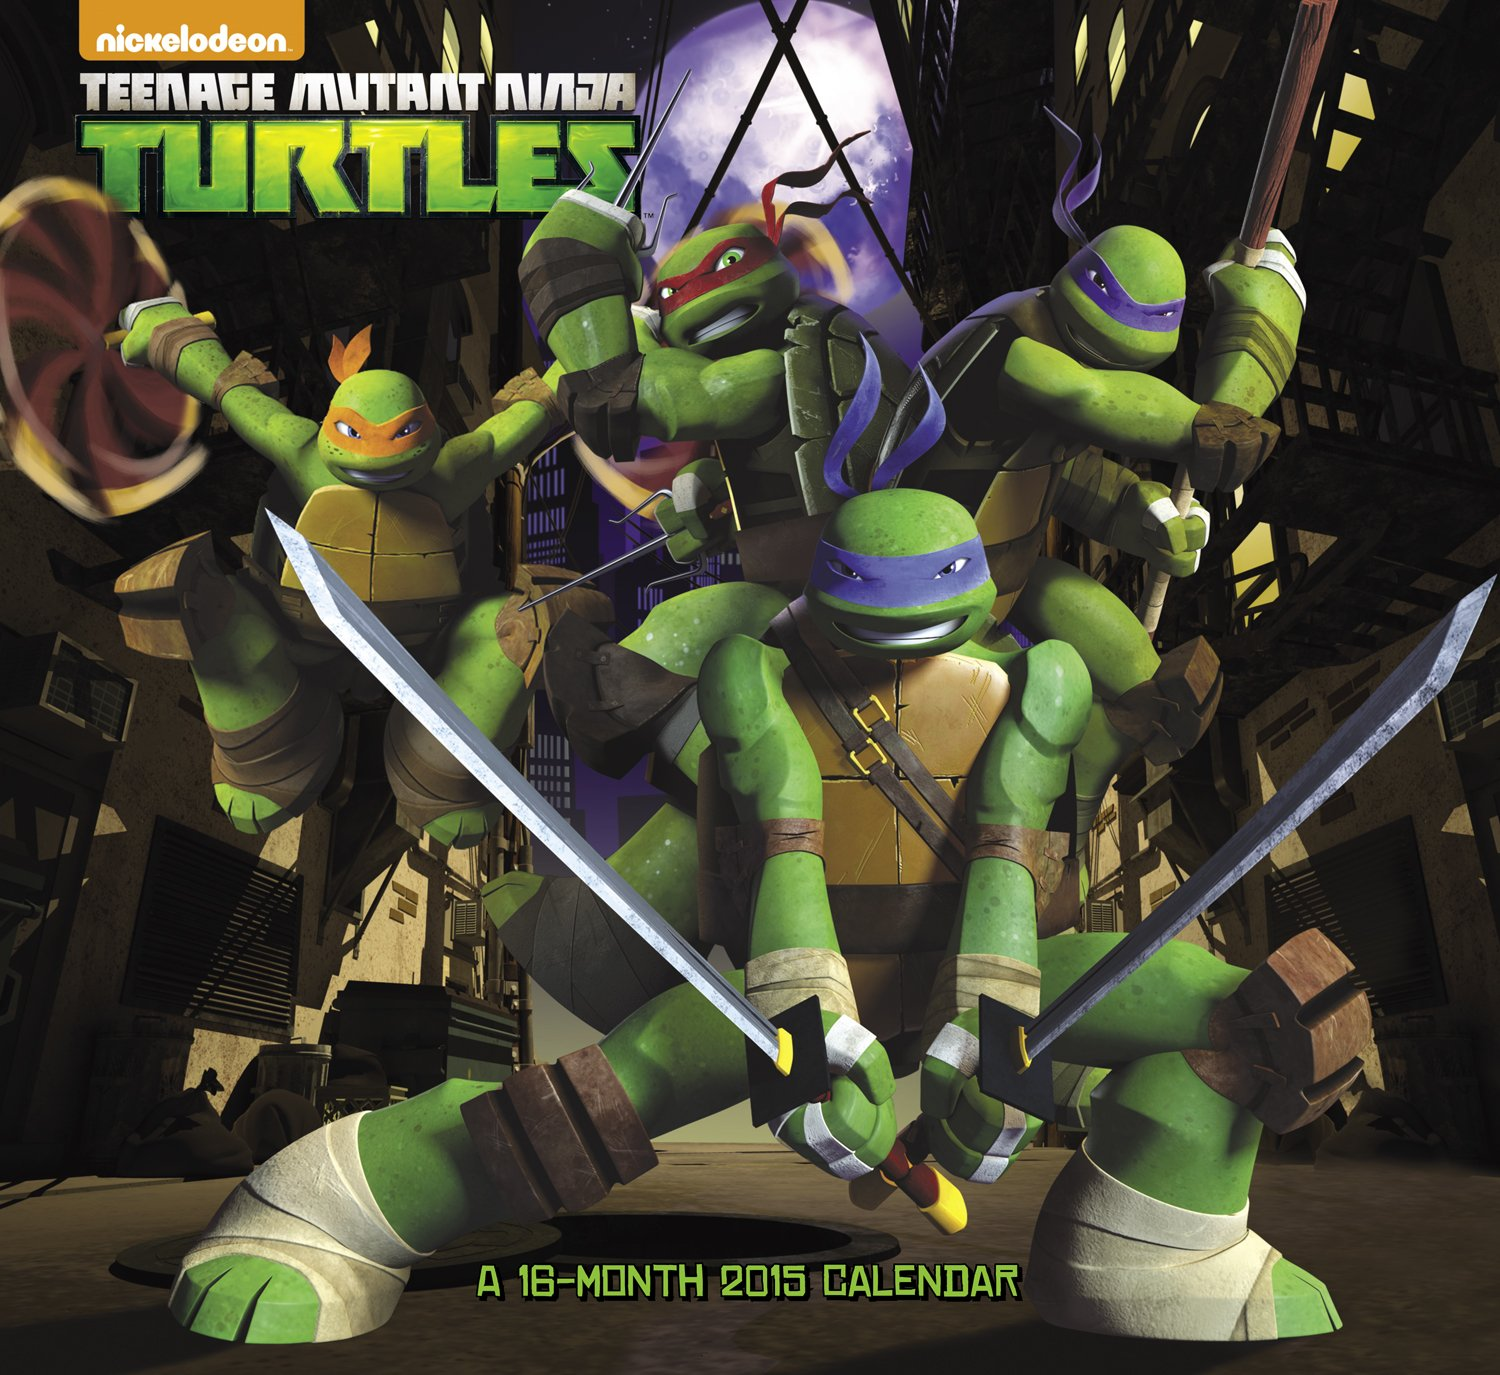 Teenage Mutant Ninja Turtles 2015 Calendar: Amazon.es: Acco ...